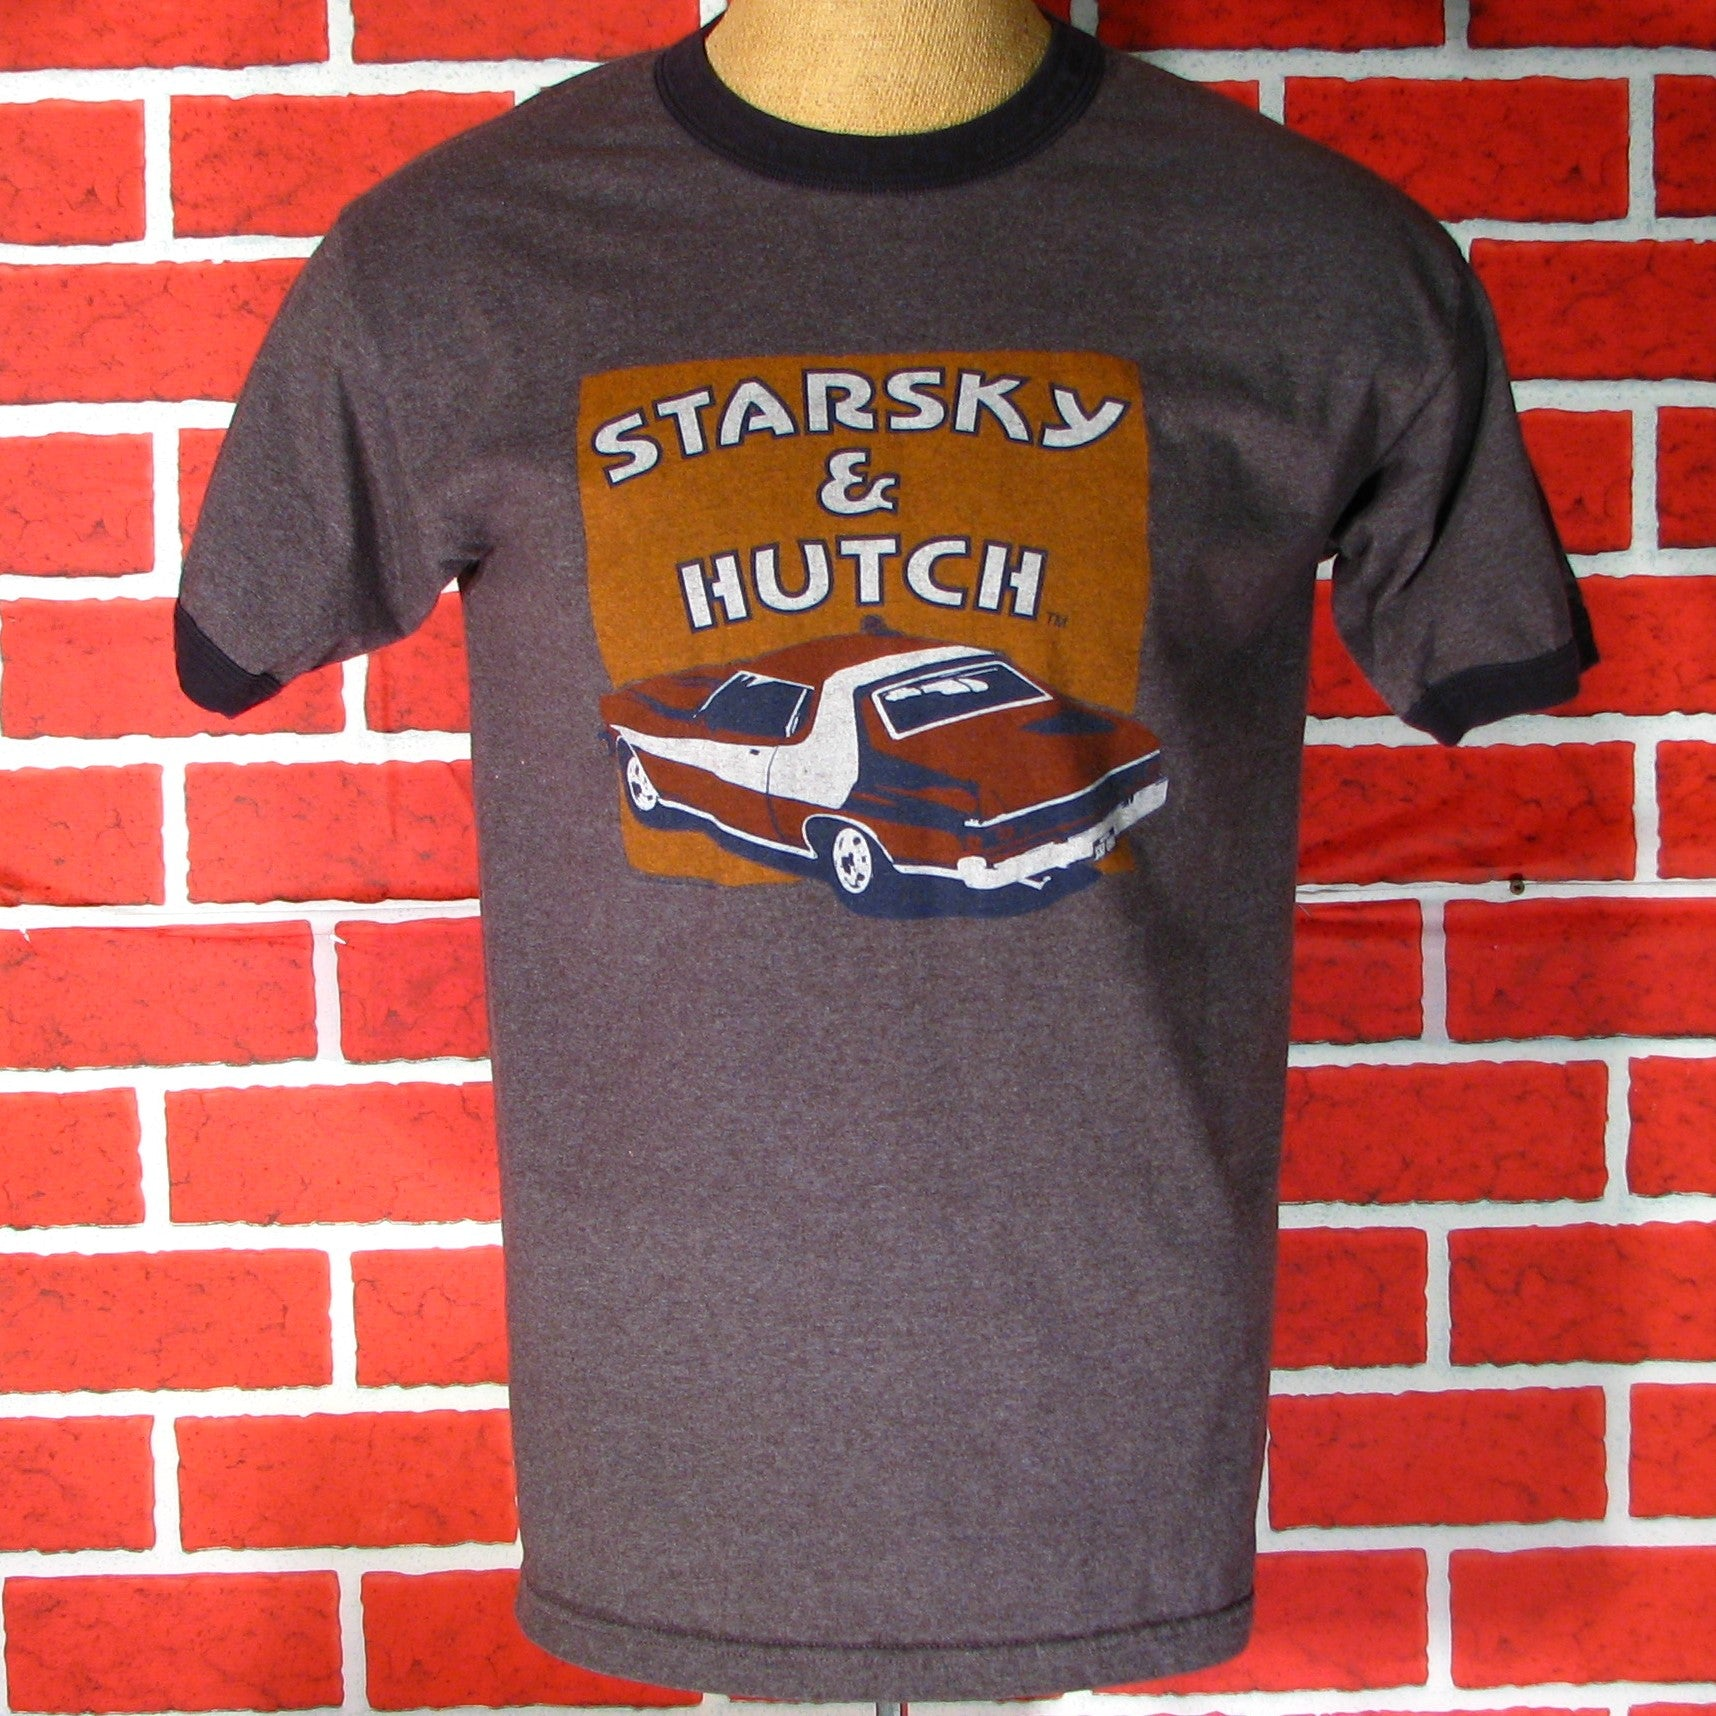 Starsky & Hutch T-Shirt